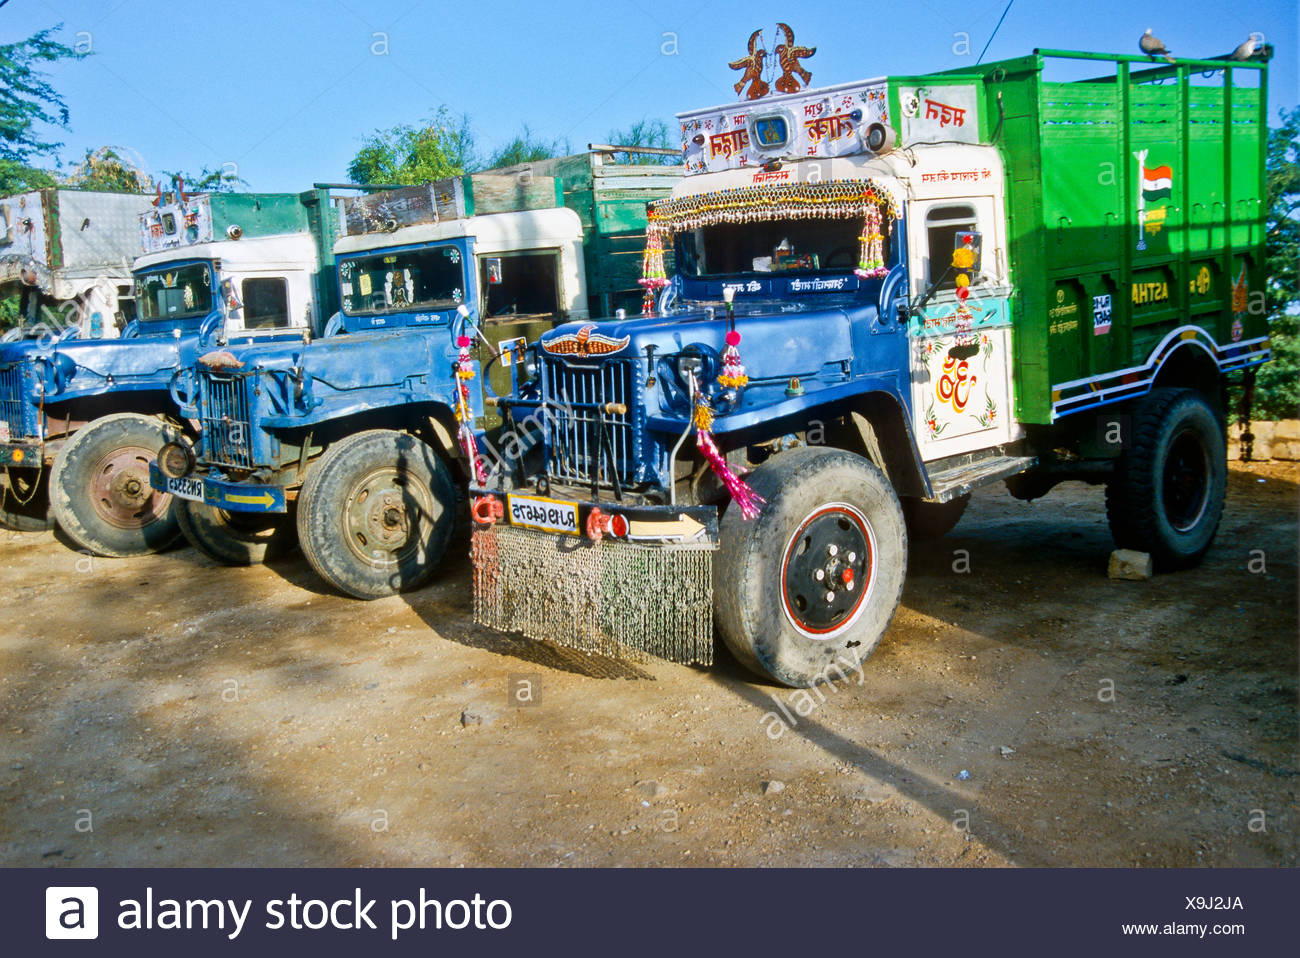 0778819ff76b4e Old trucks used for transportation in rural areas